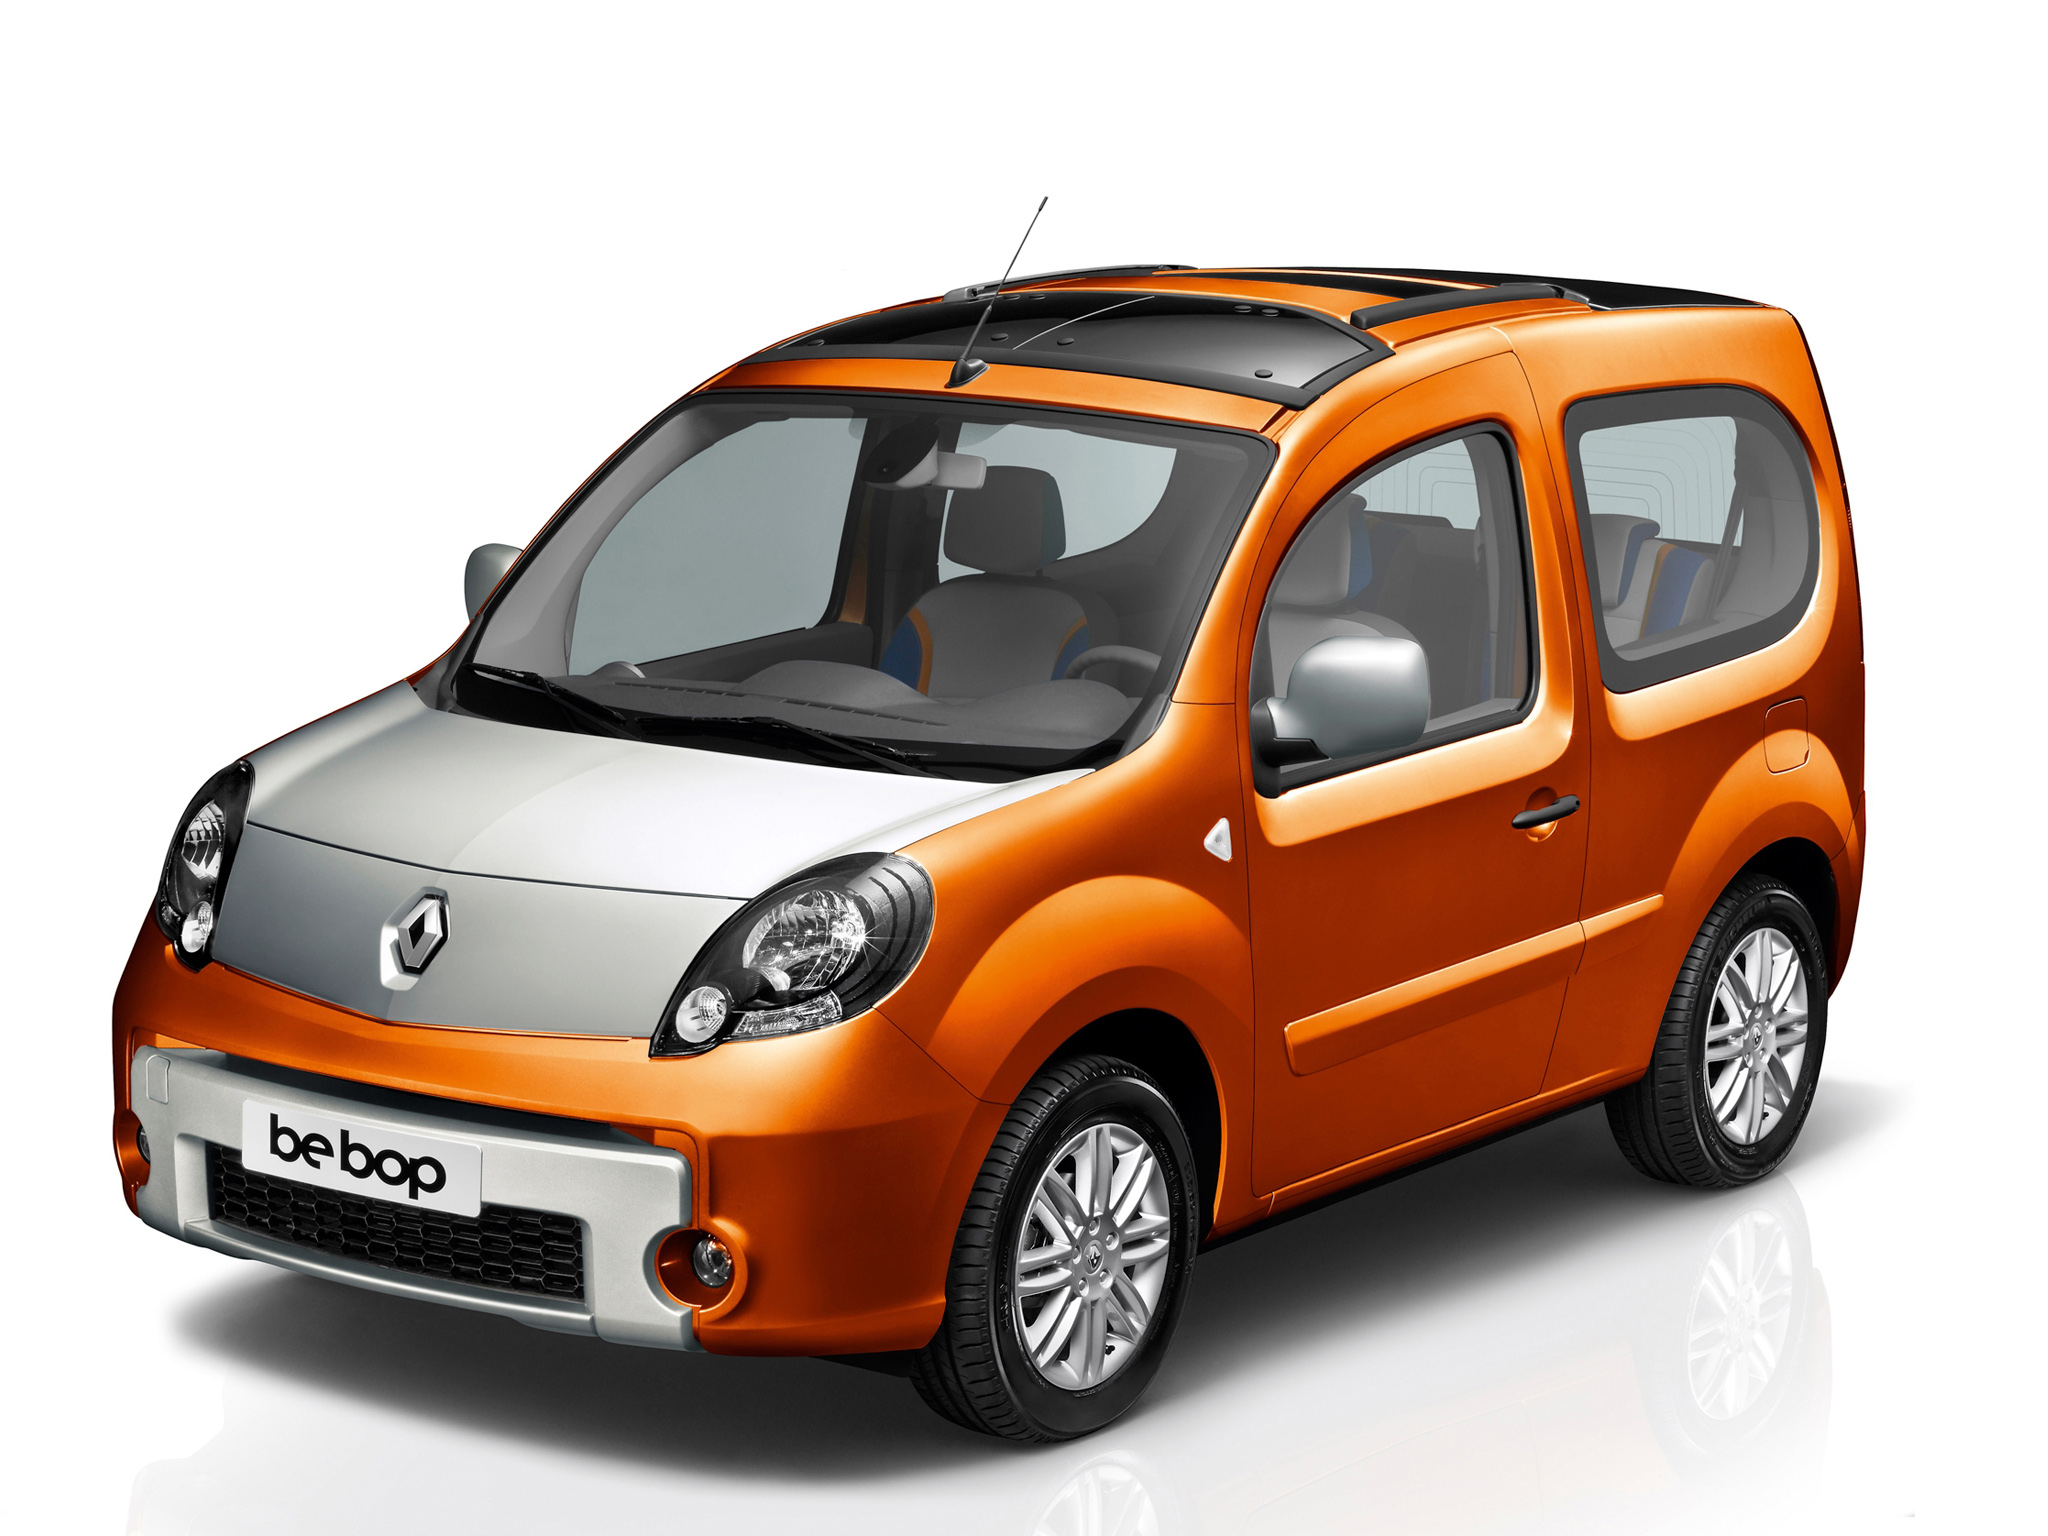 Renault be-bop photo - 2